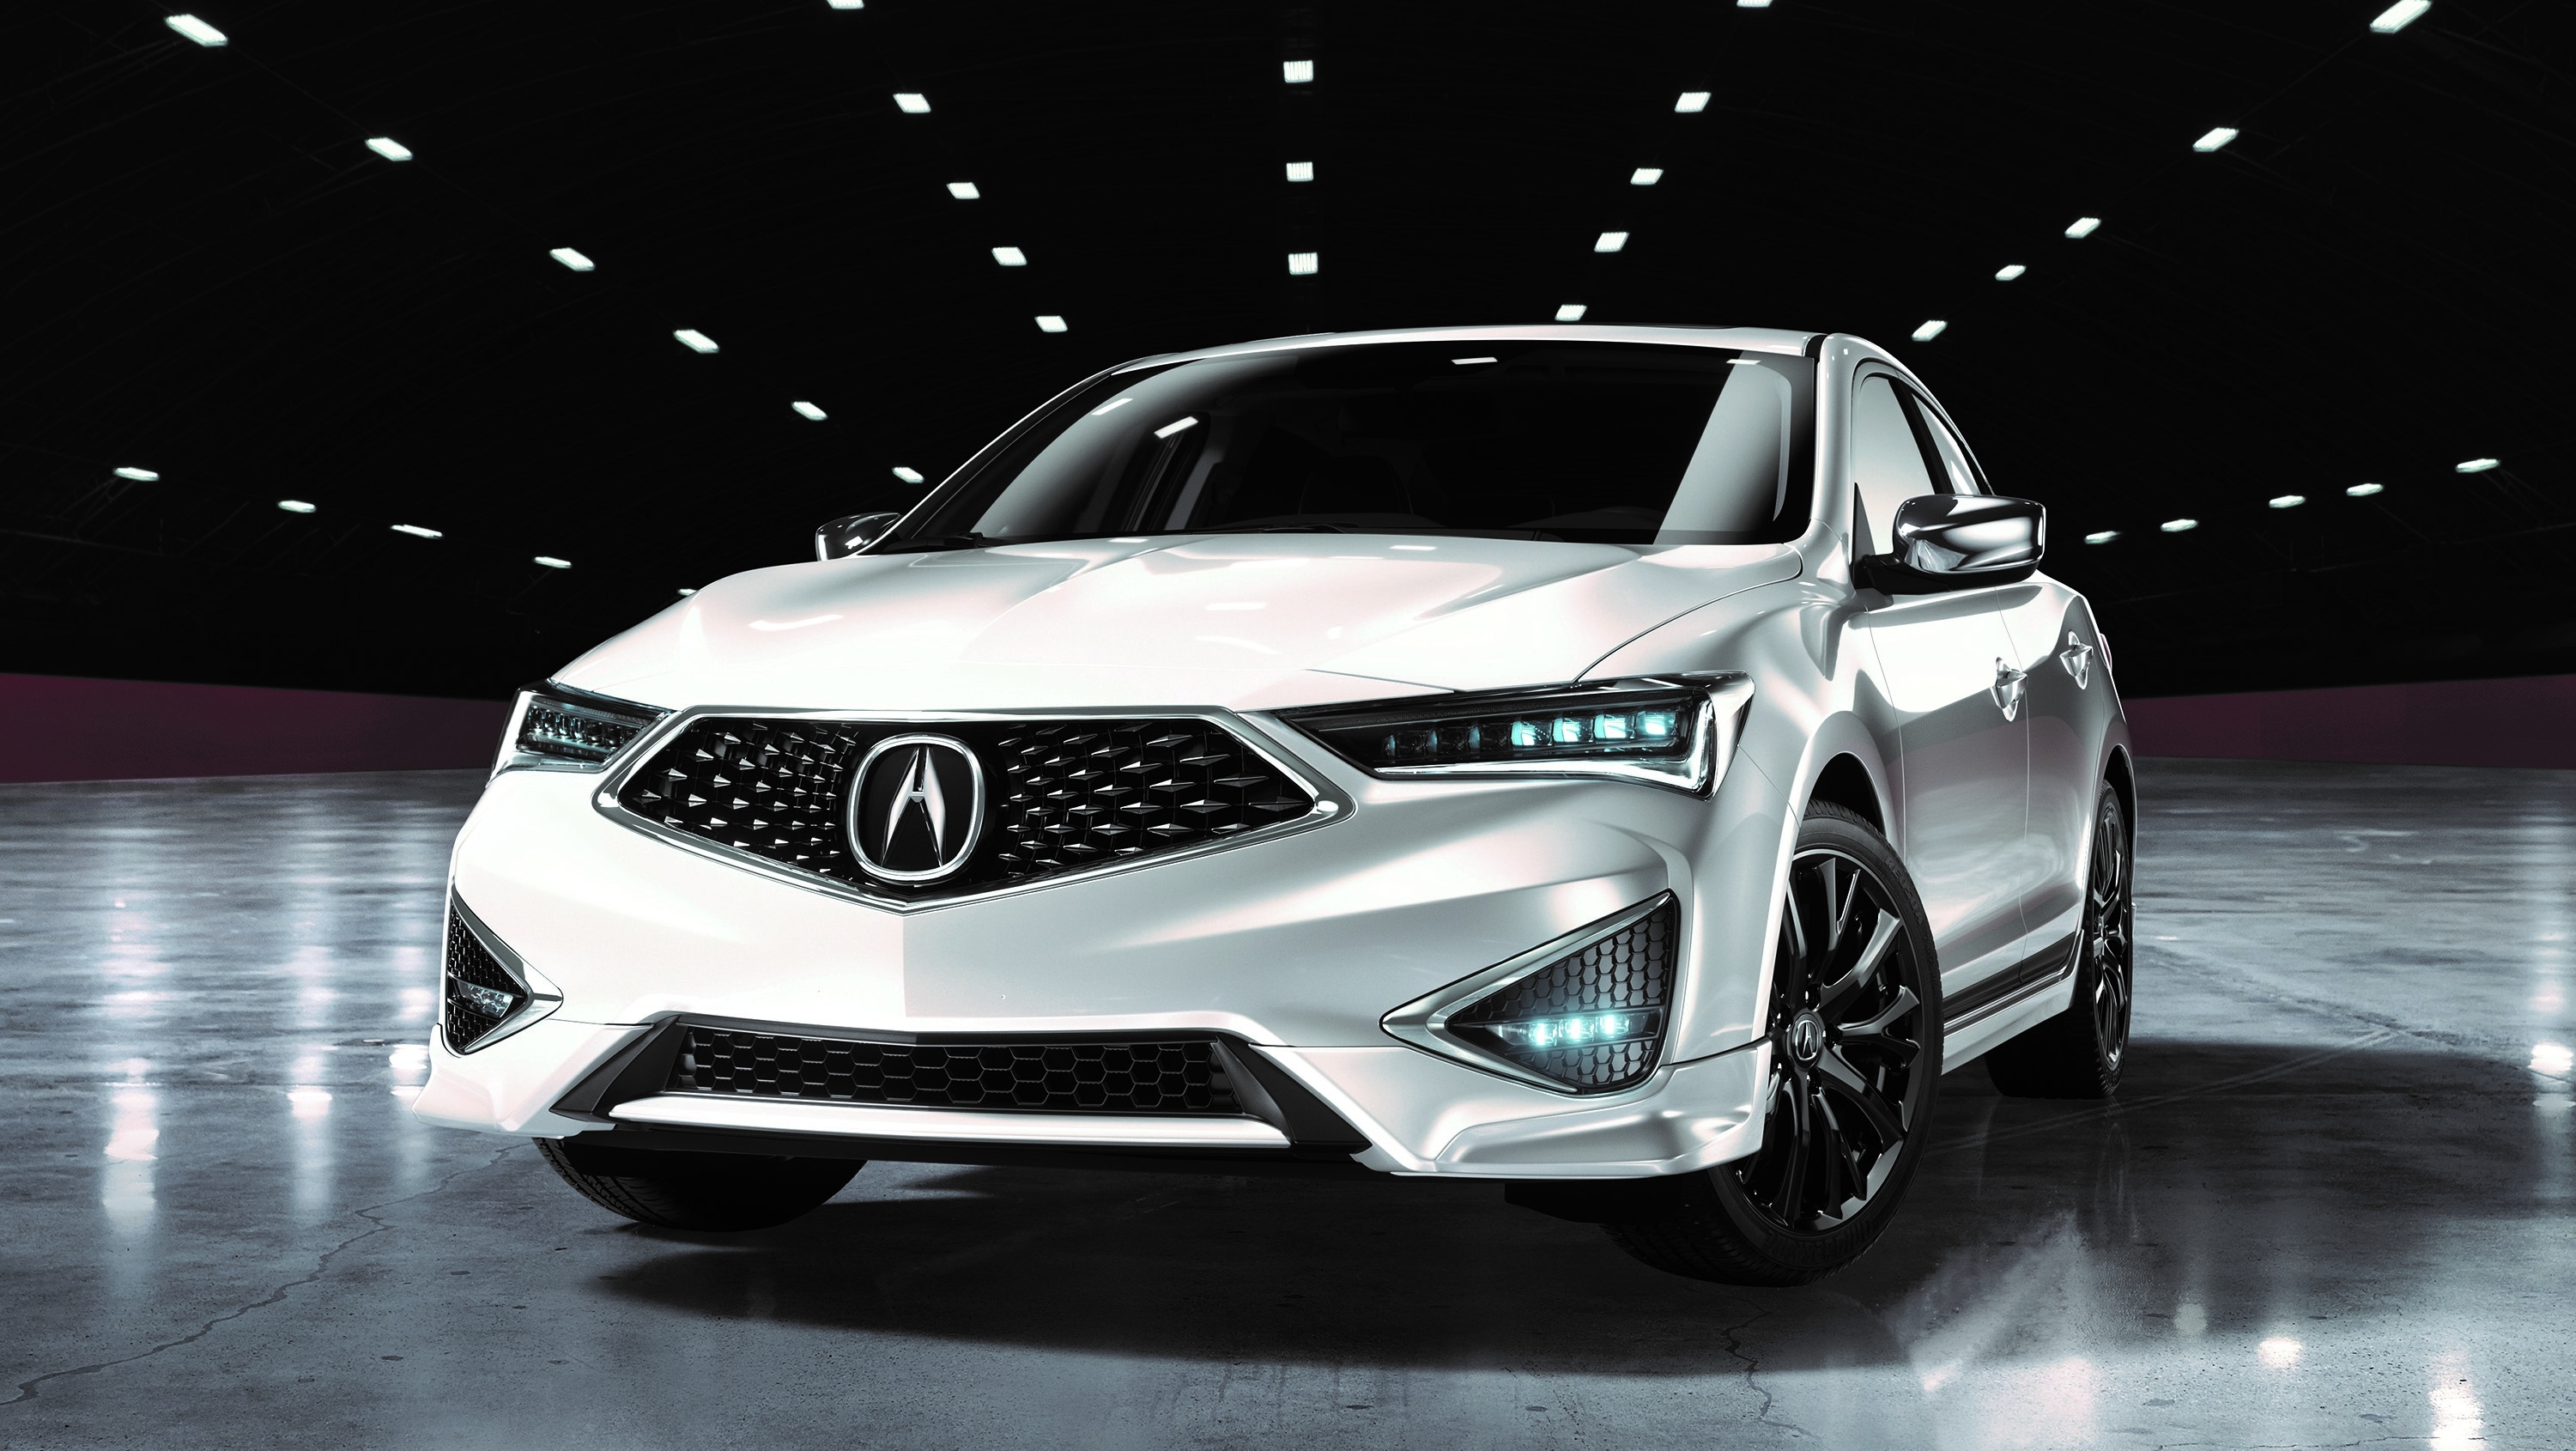 Acura Rdx Accessories >> The 2019 Acura ILX Was Showcased At SEMA With Some Awesome New Accessories Pictures, Photos ...